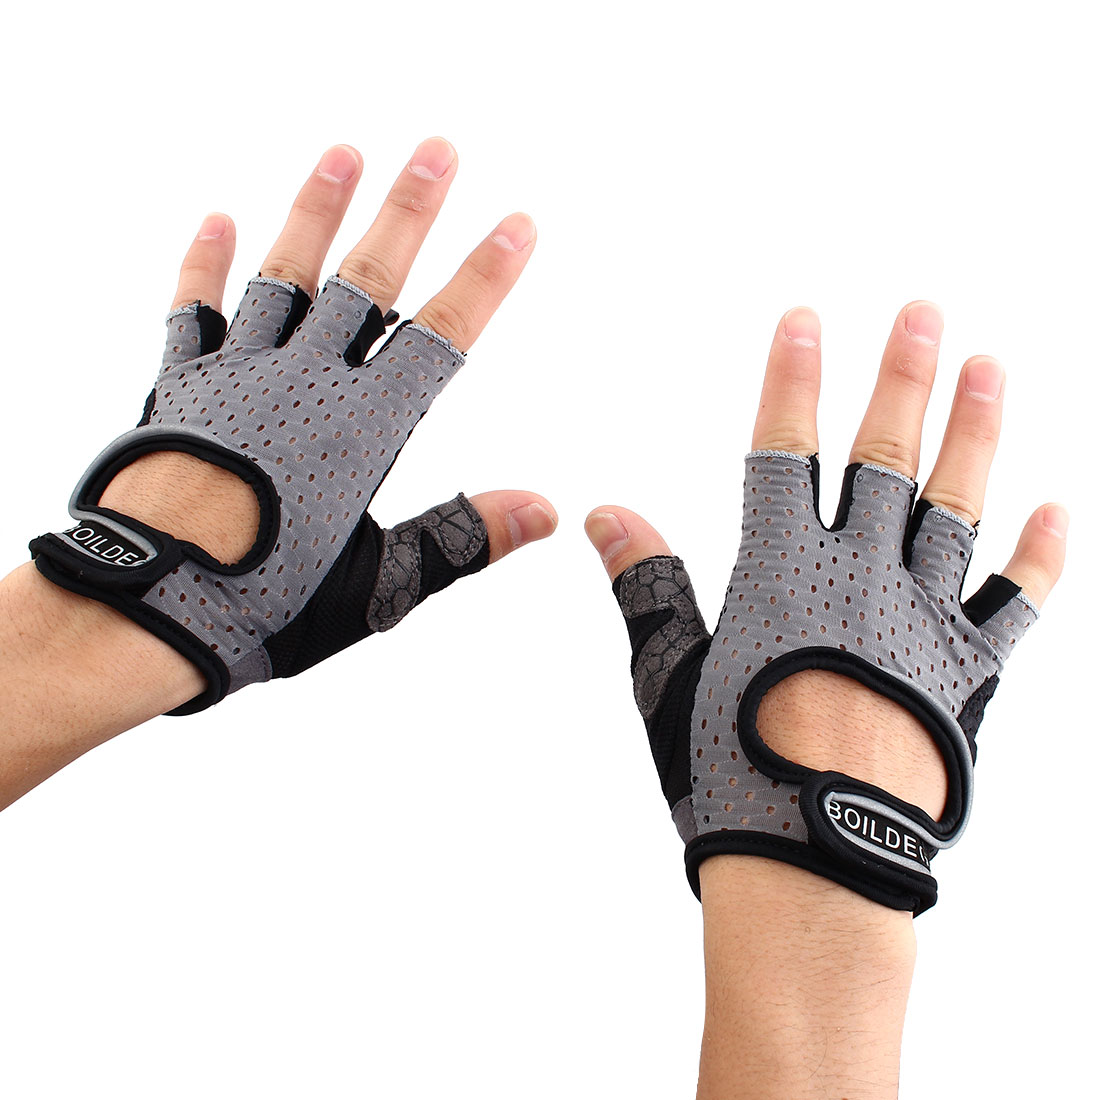 BOILDEG Authorized Unisex Sports Weight Fitness Exercise Workout Breathable Palm Support Gloves Gray Size L Pair